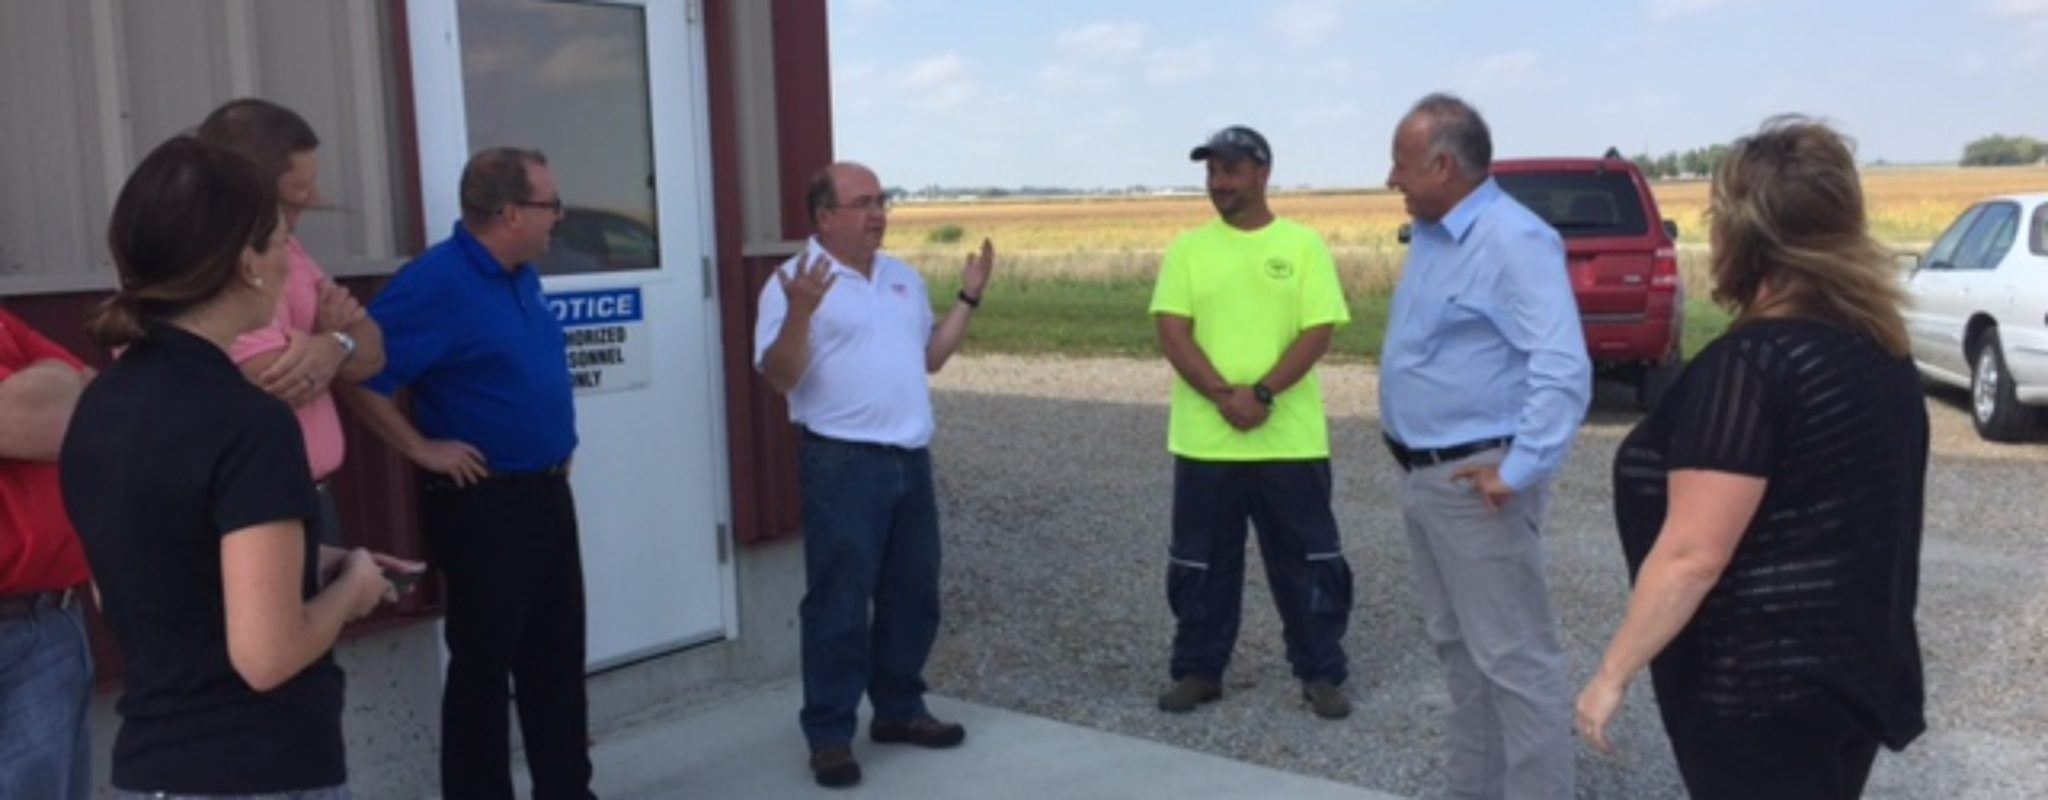 Congressman Steve King (Iowa) visits Christensen Farms Truck Wash